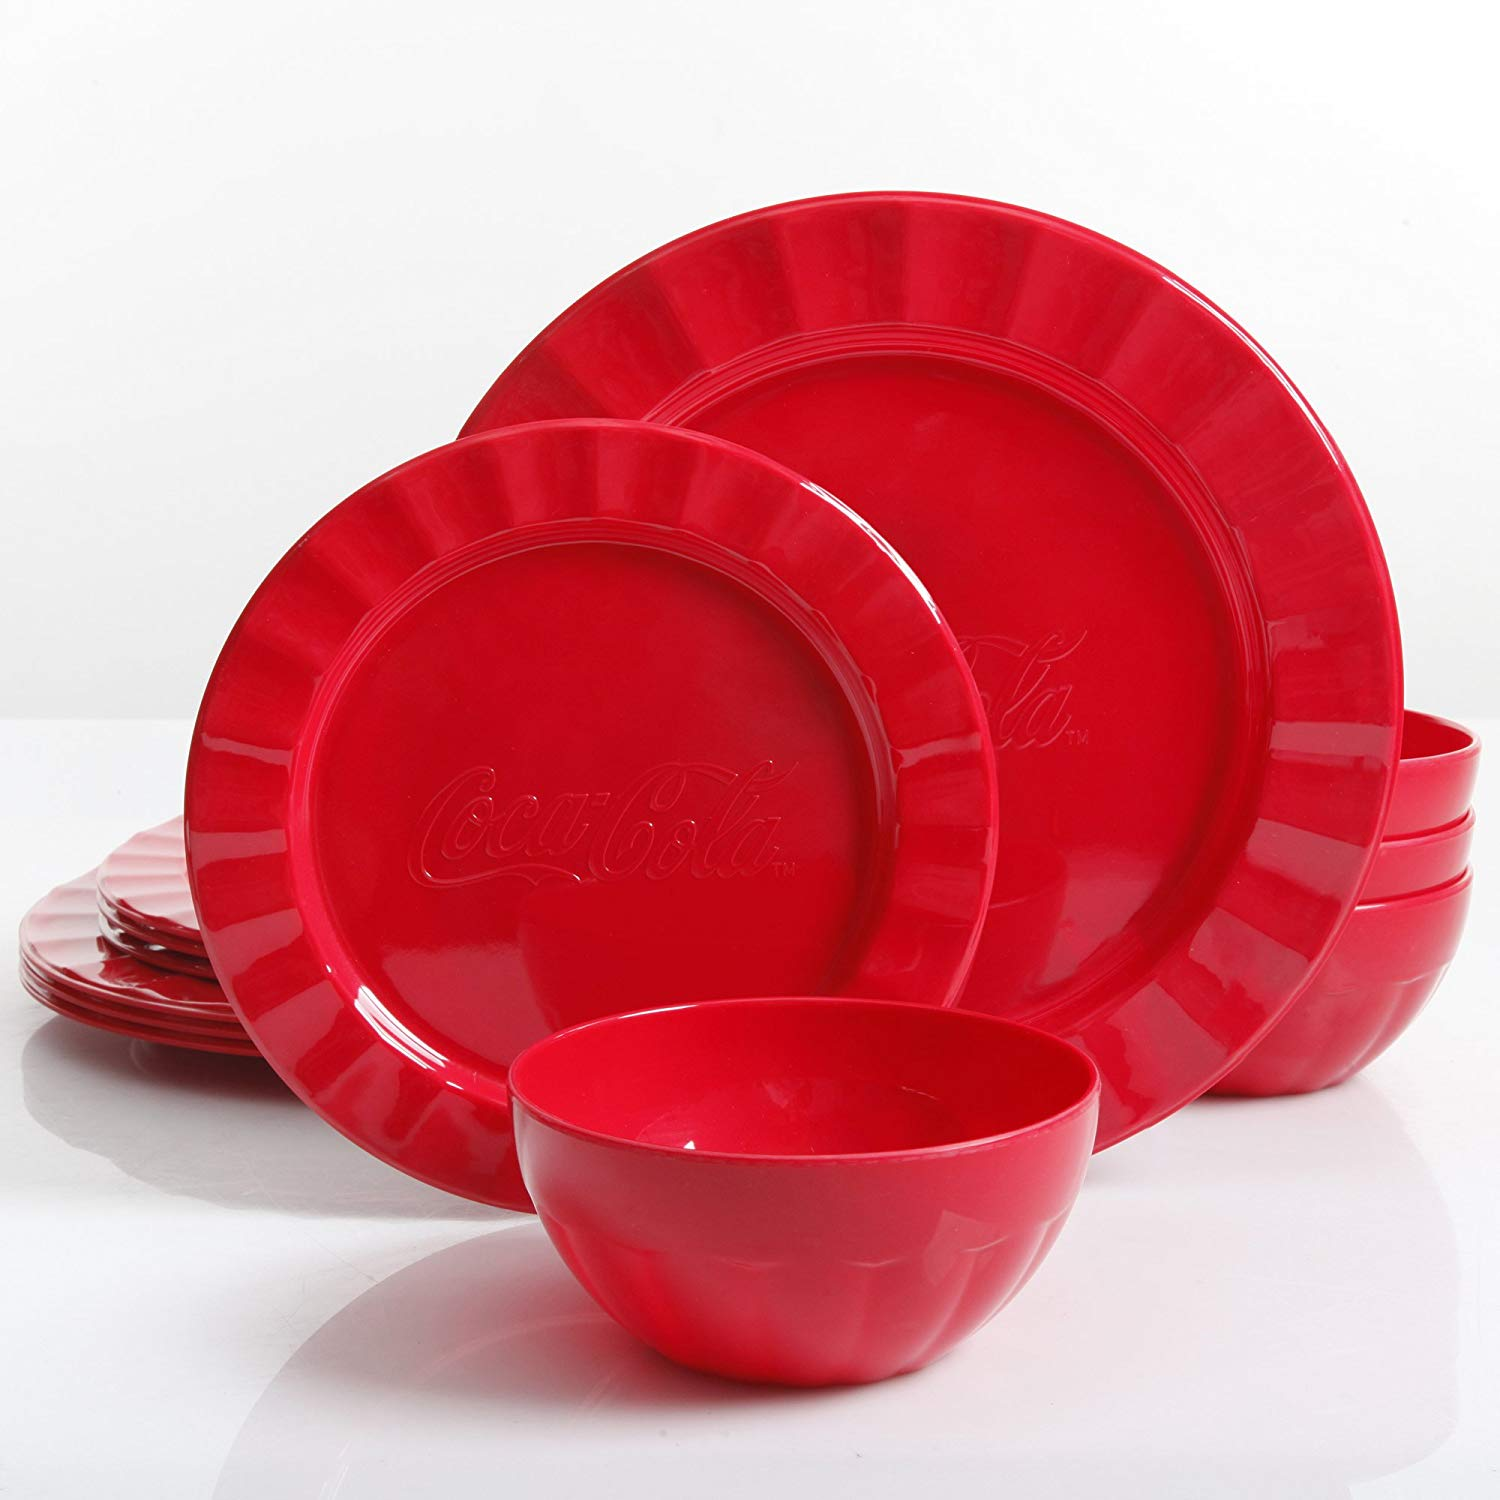 Coca Cola 12 Pcs. Red Durable Melamine Dinner set For 4 Person